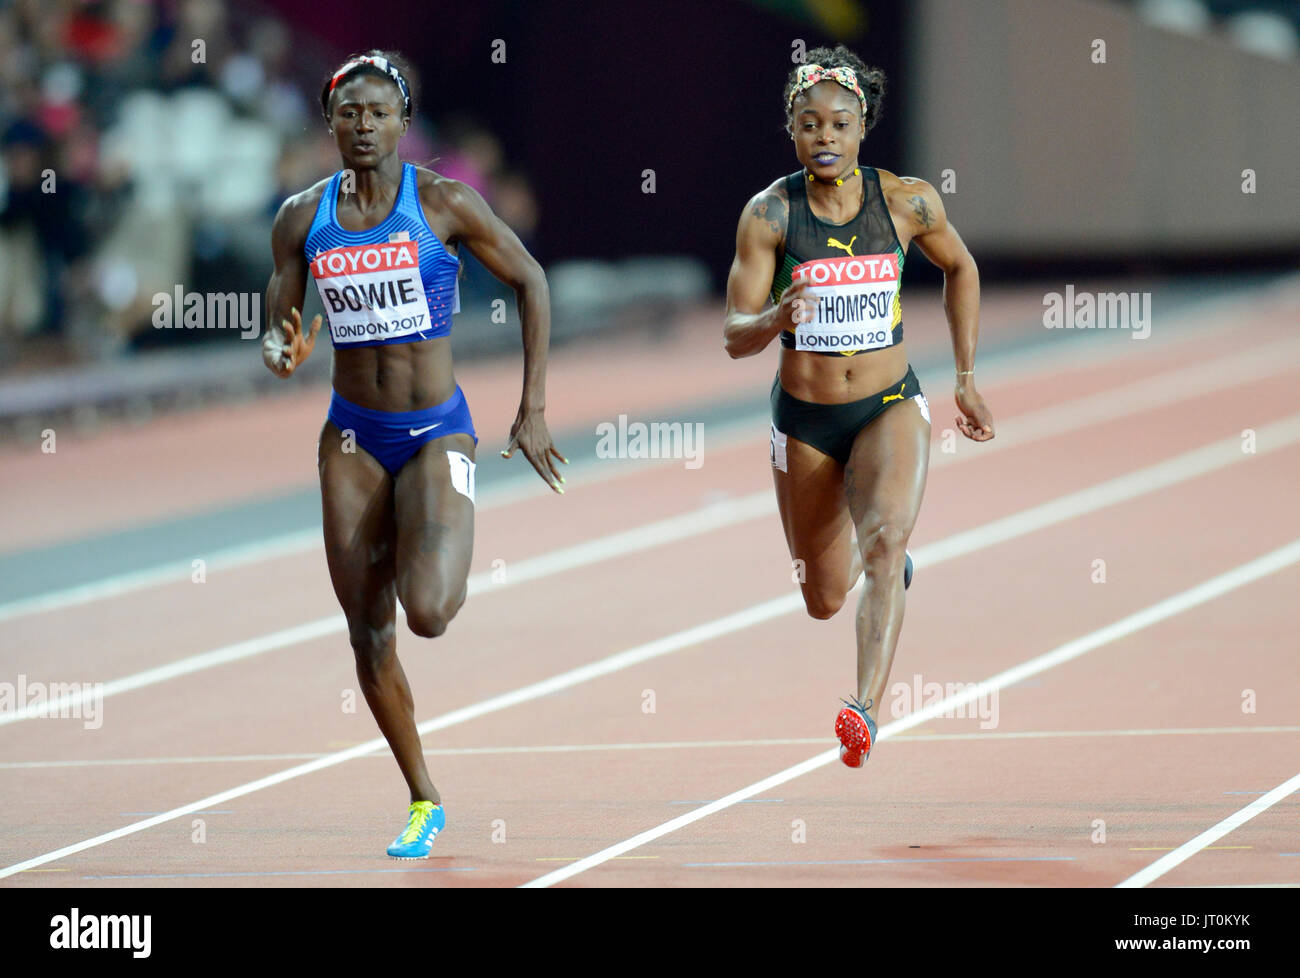 London, UK. 06th Aug, 2017. Torie Bowie, runner-up to Elaine Thompson in last year's Olympic final in Rio, crashed to the track unaware that she had pulled victory out of the bag – by 0.01 in 10.85, Credit: Mariano Garcia/Alamy Live News - Stock Image